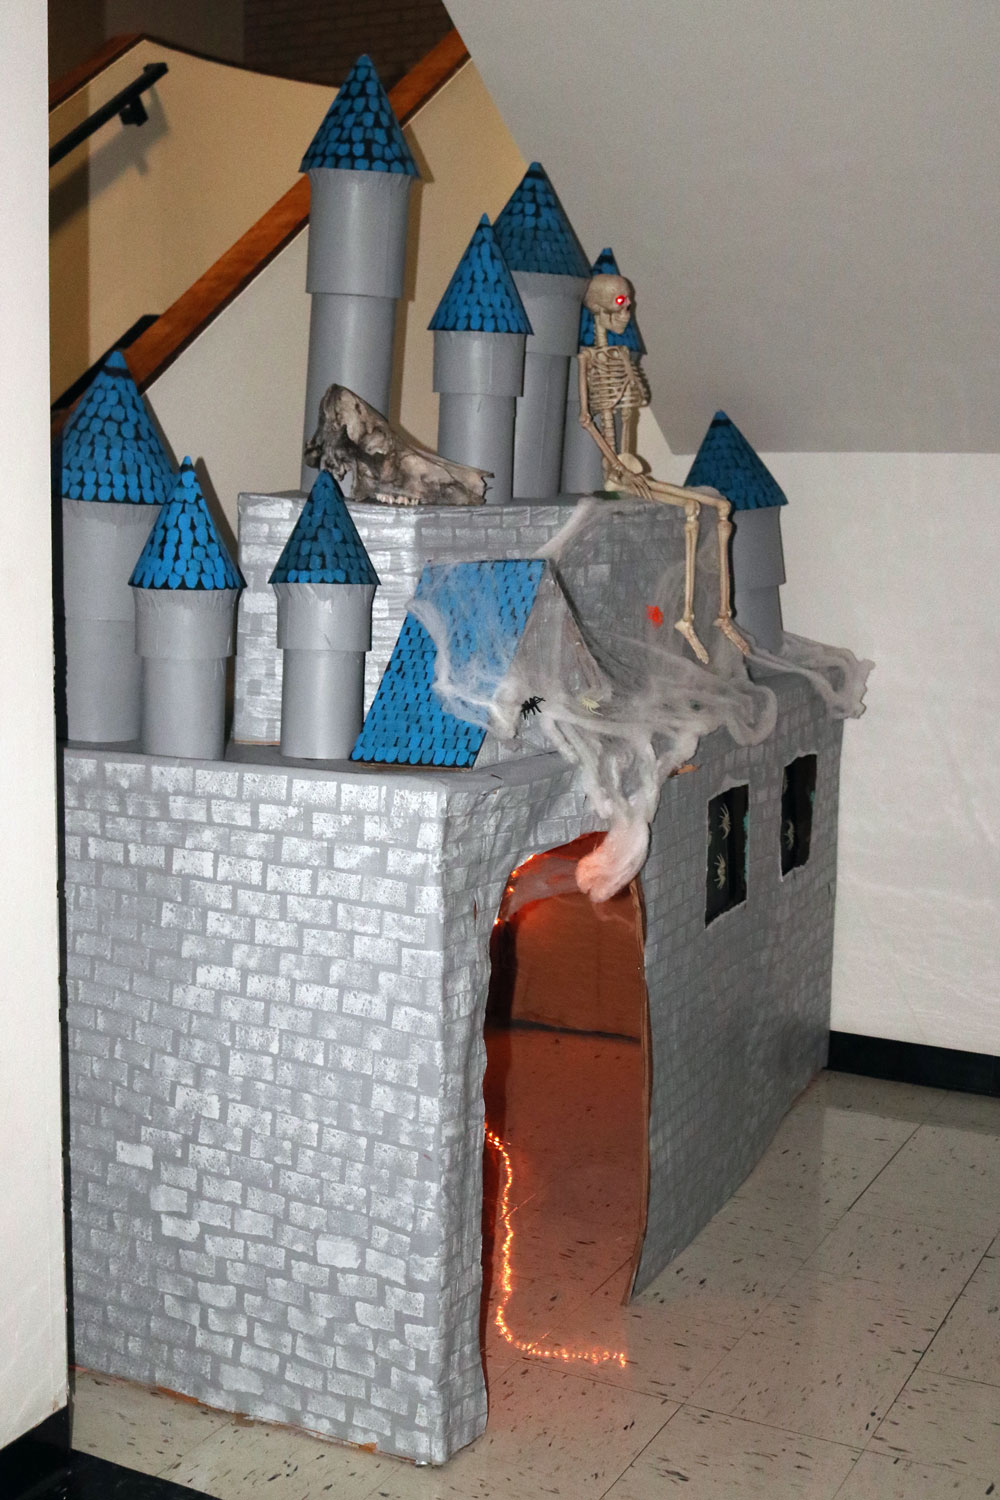 SCCC%E2%80%99s+Kylyx+club+showcases+an+amazing+castle+for+trick-or-treaters+to+run+in+and+out+of.+While+crawling+through+the+castle%2C+kids+were+frightened+by+screams.